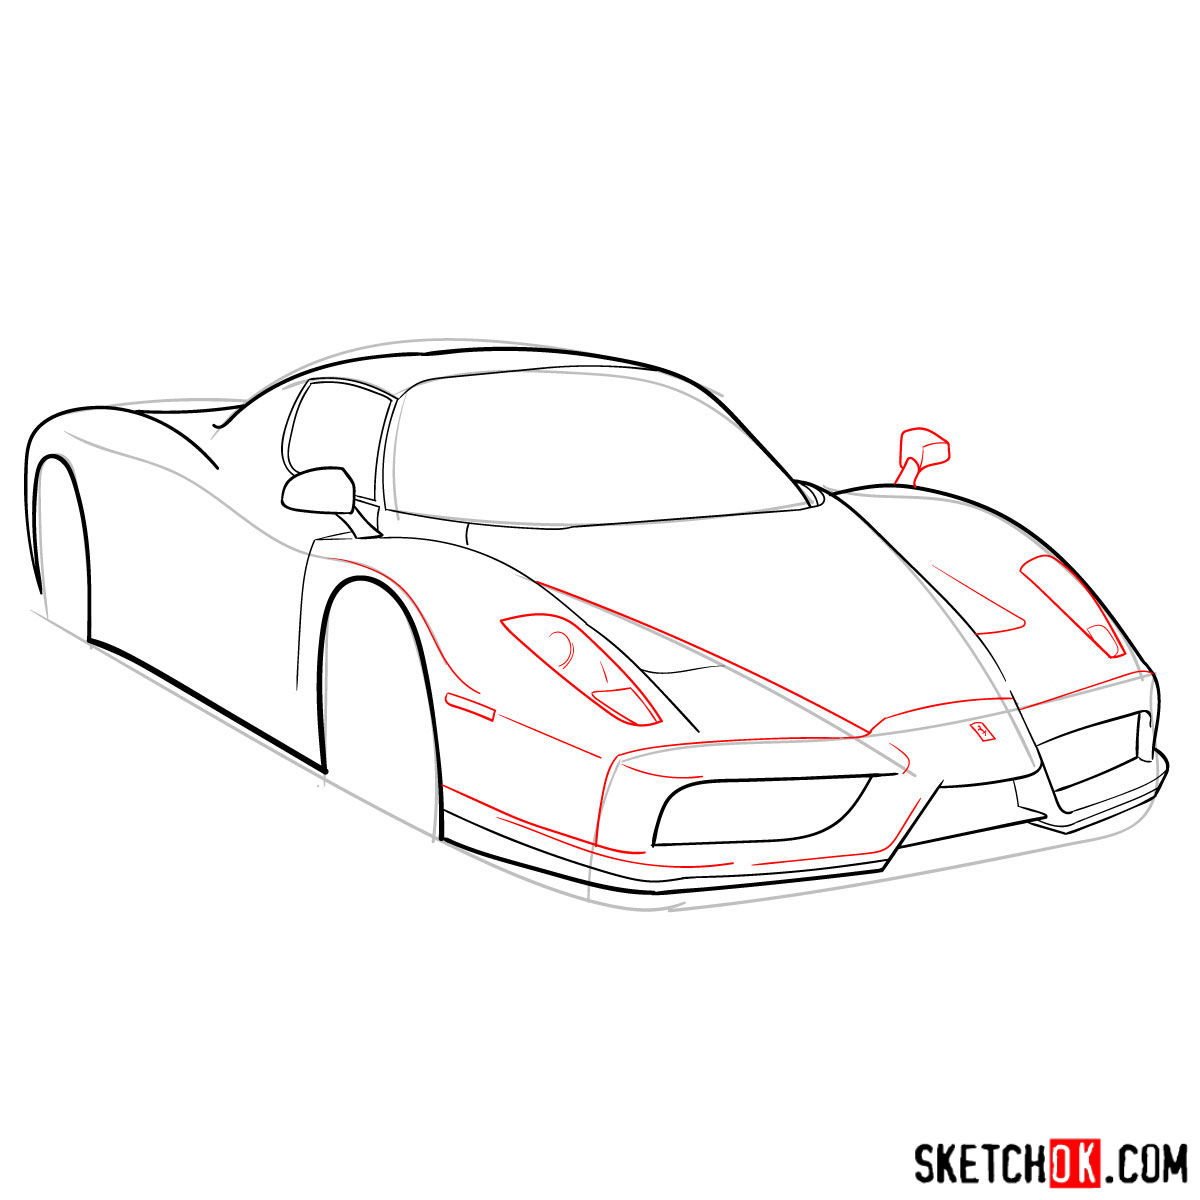 How to draw Ferrari Enzo legendary supercar - step 07